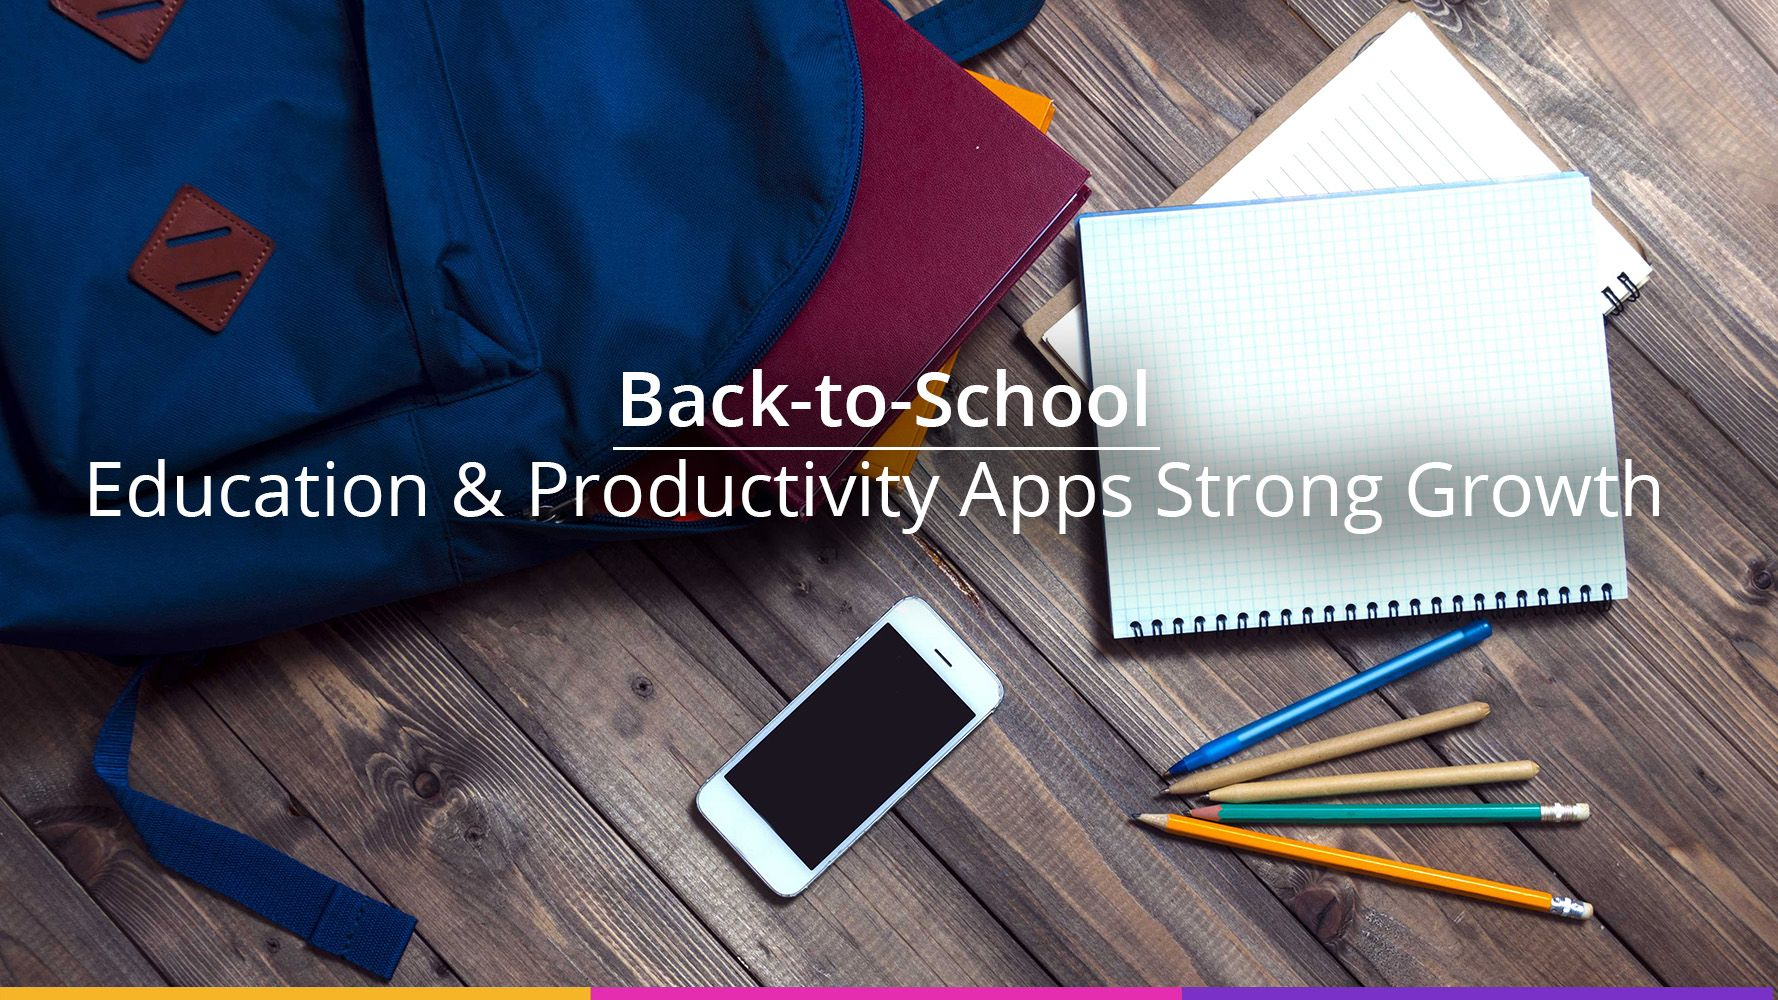 Education & Productivity apps show strong growth in downloads at the end of summer